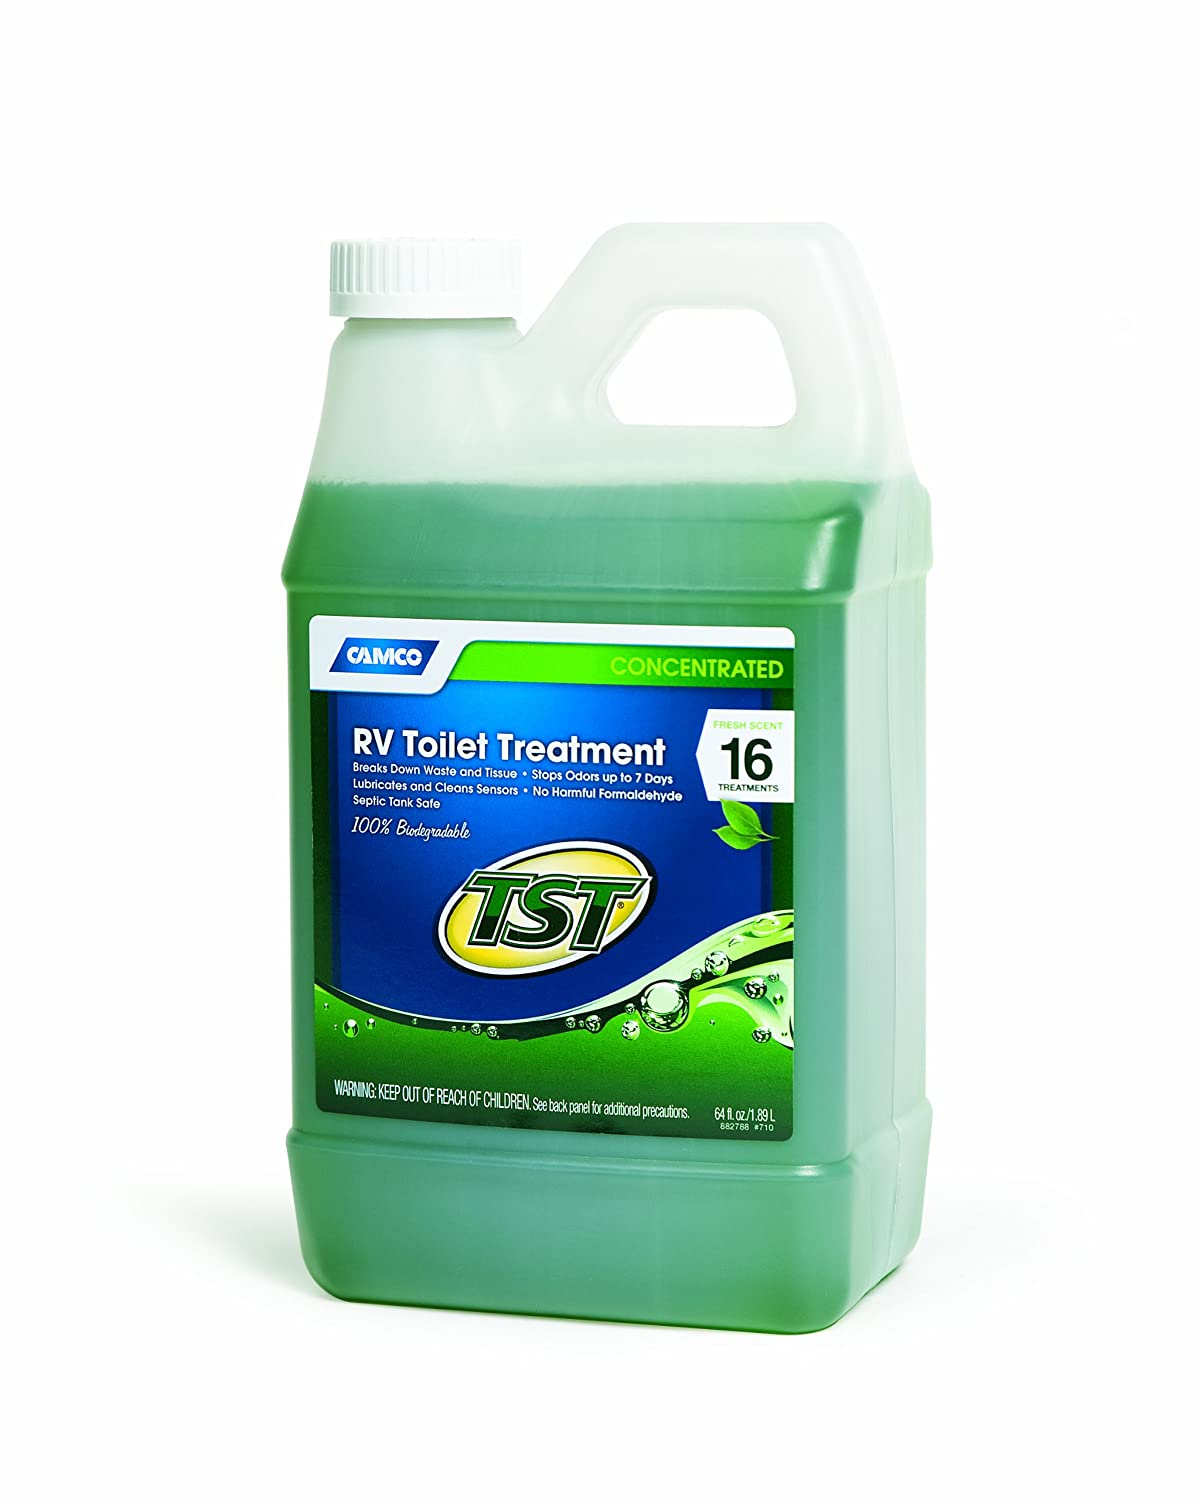 Camco TST Fresh Scent RV Toilet Treatment, Formaldehyde Free, Breaks Down  Waste And Tissue, Septic Tank Safe, Treats up to 16 - 40 Gallon Holding